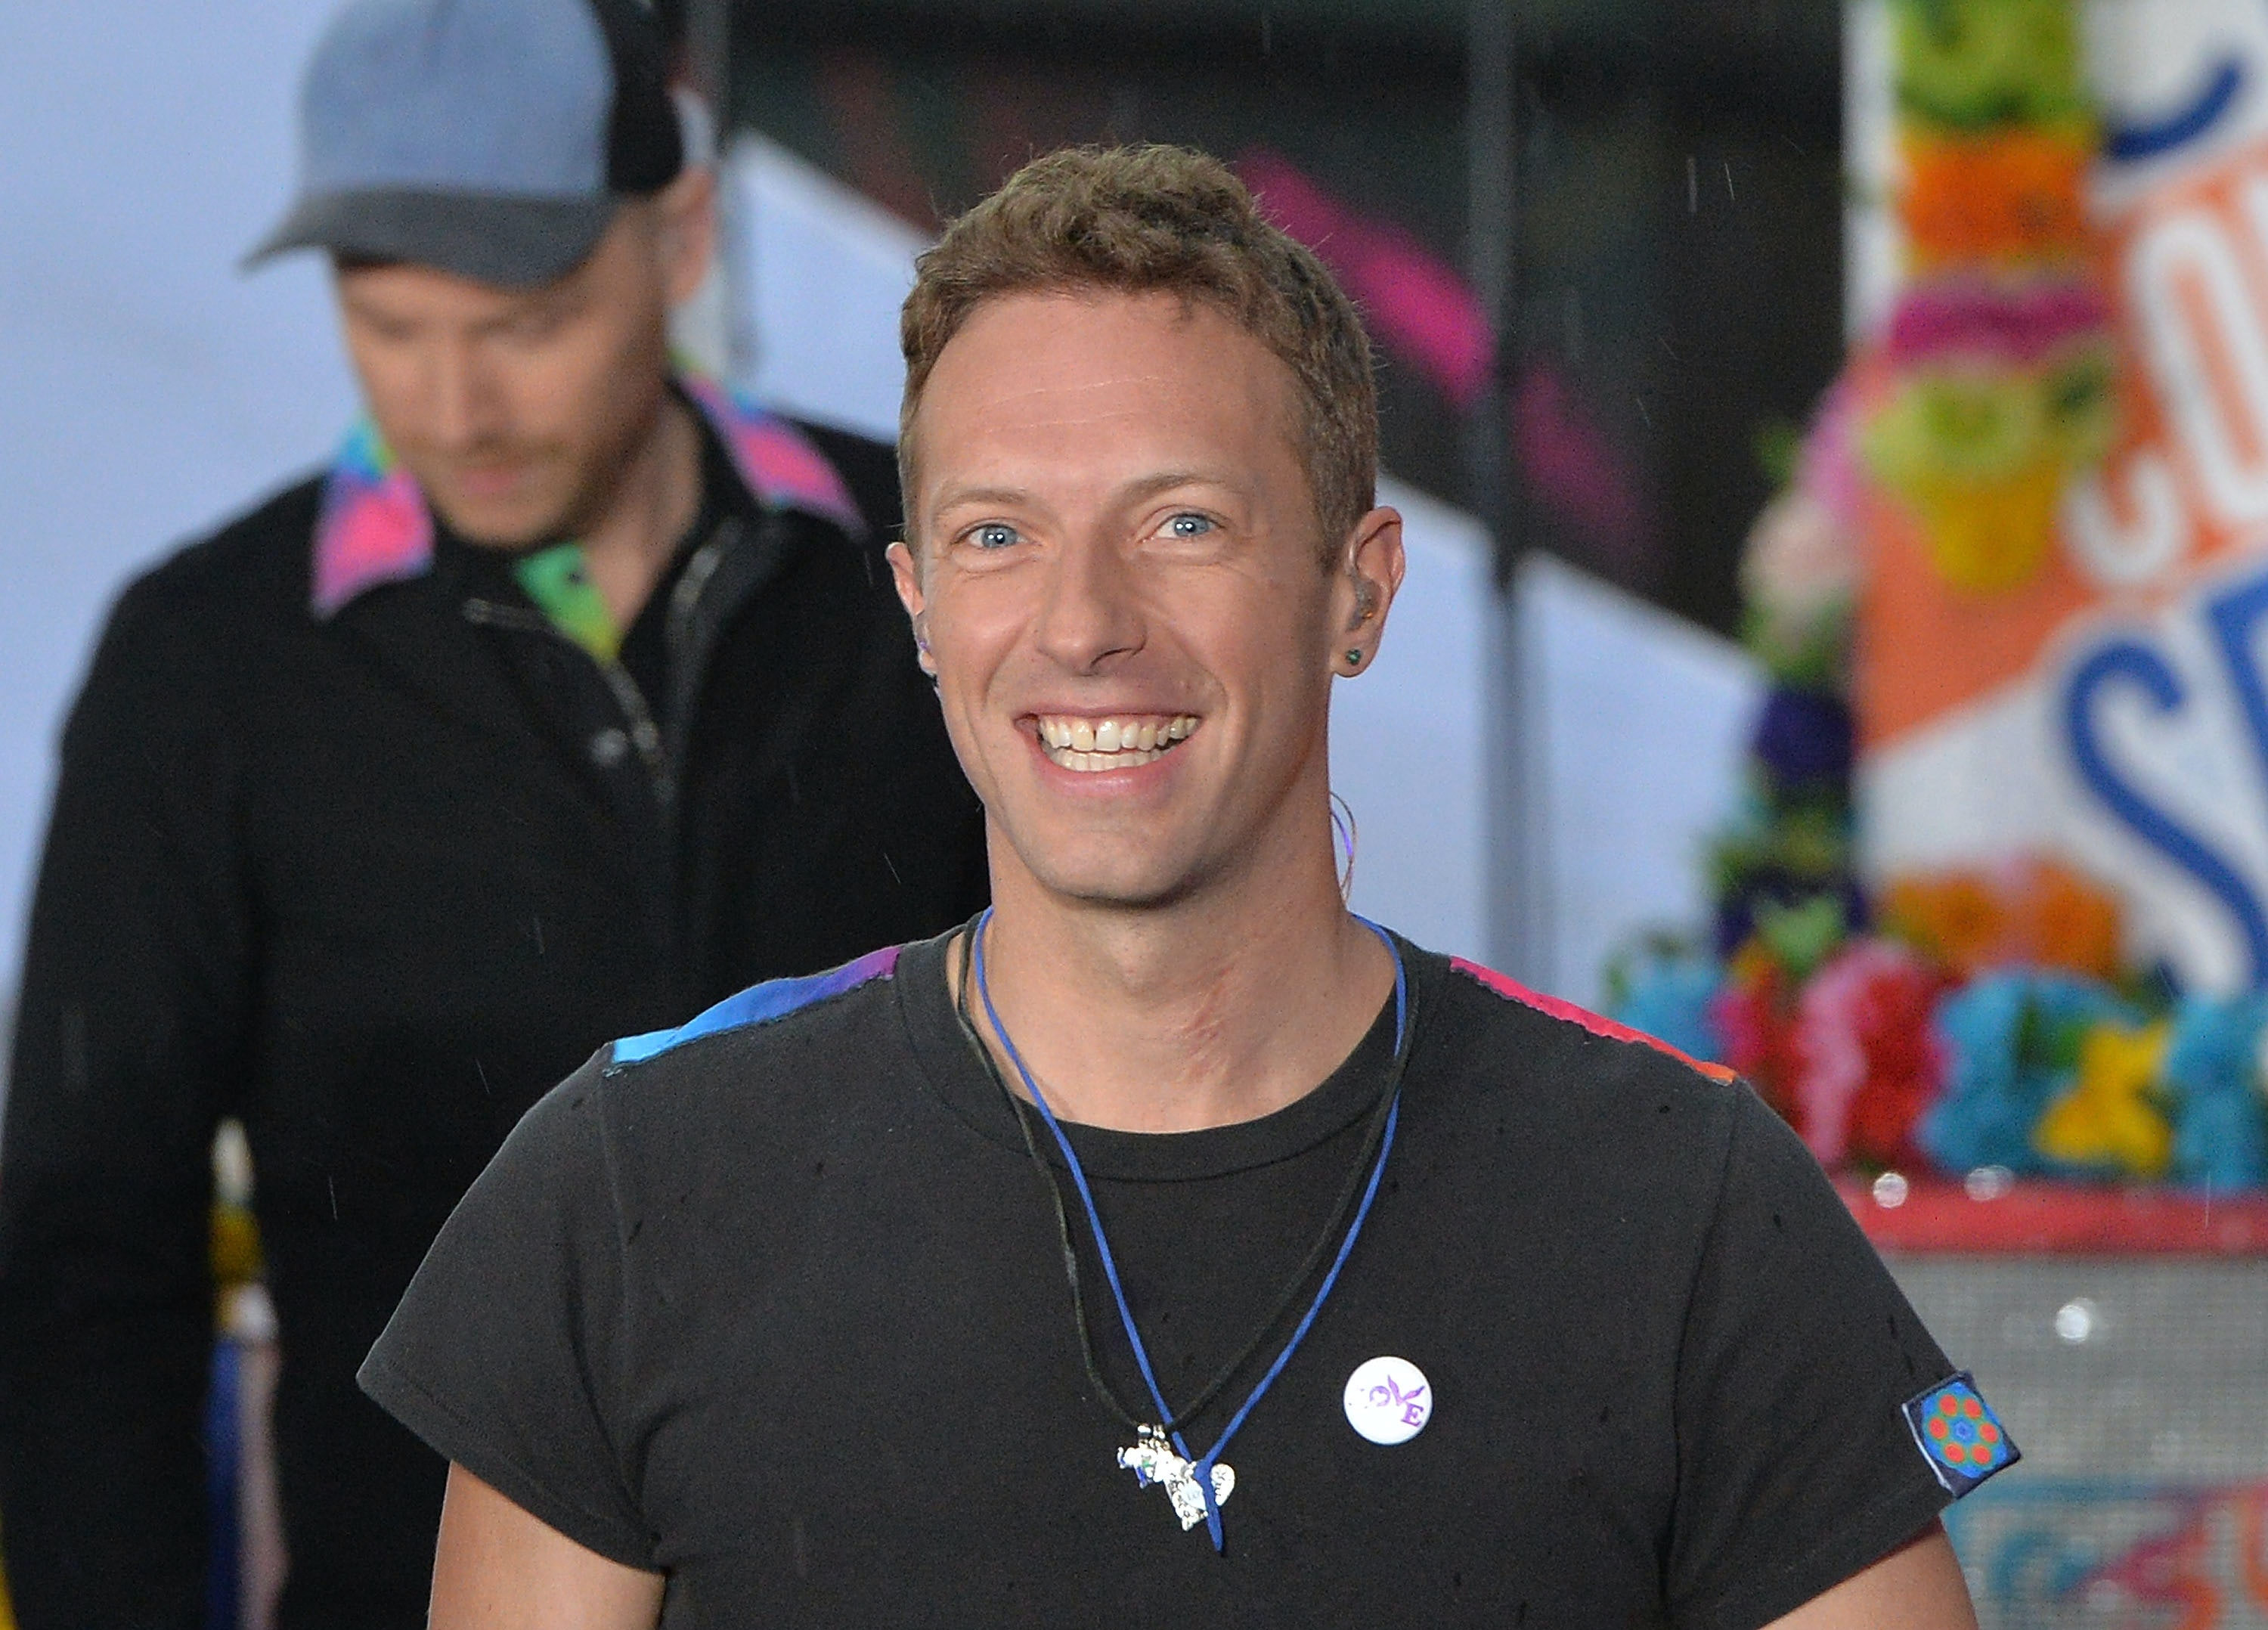 Will Coldplay Tour The UK In 2019? Chris Martin's Band Could